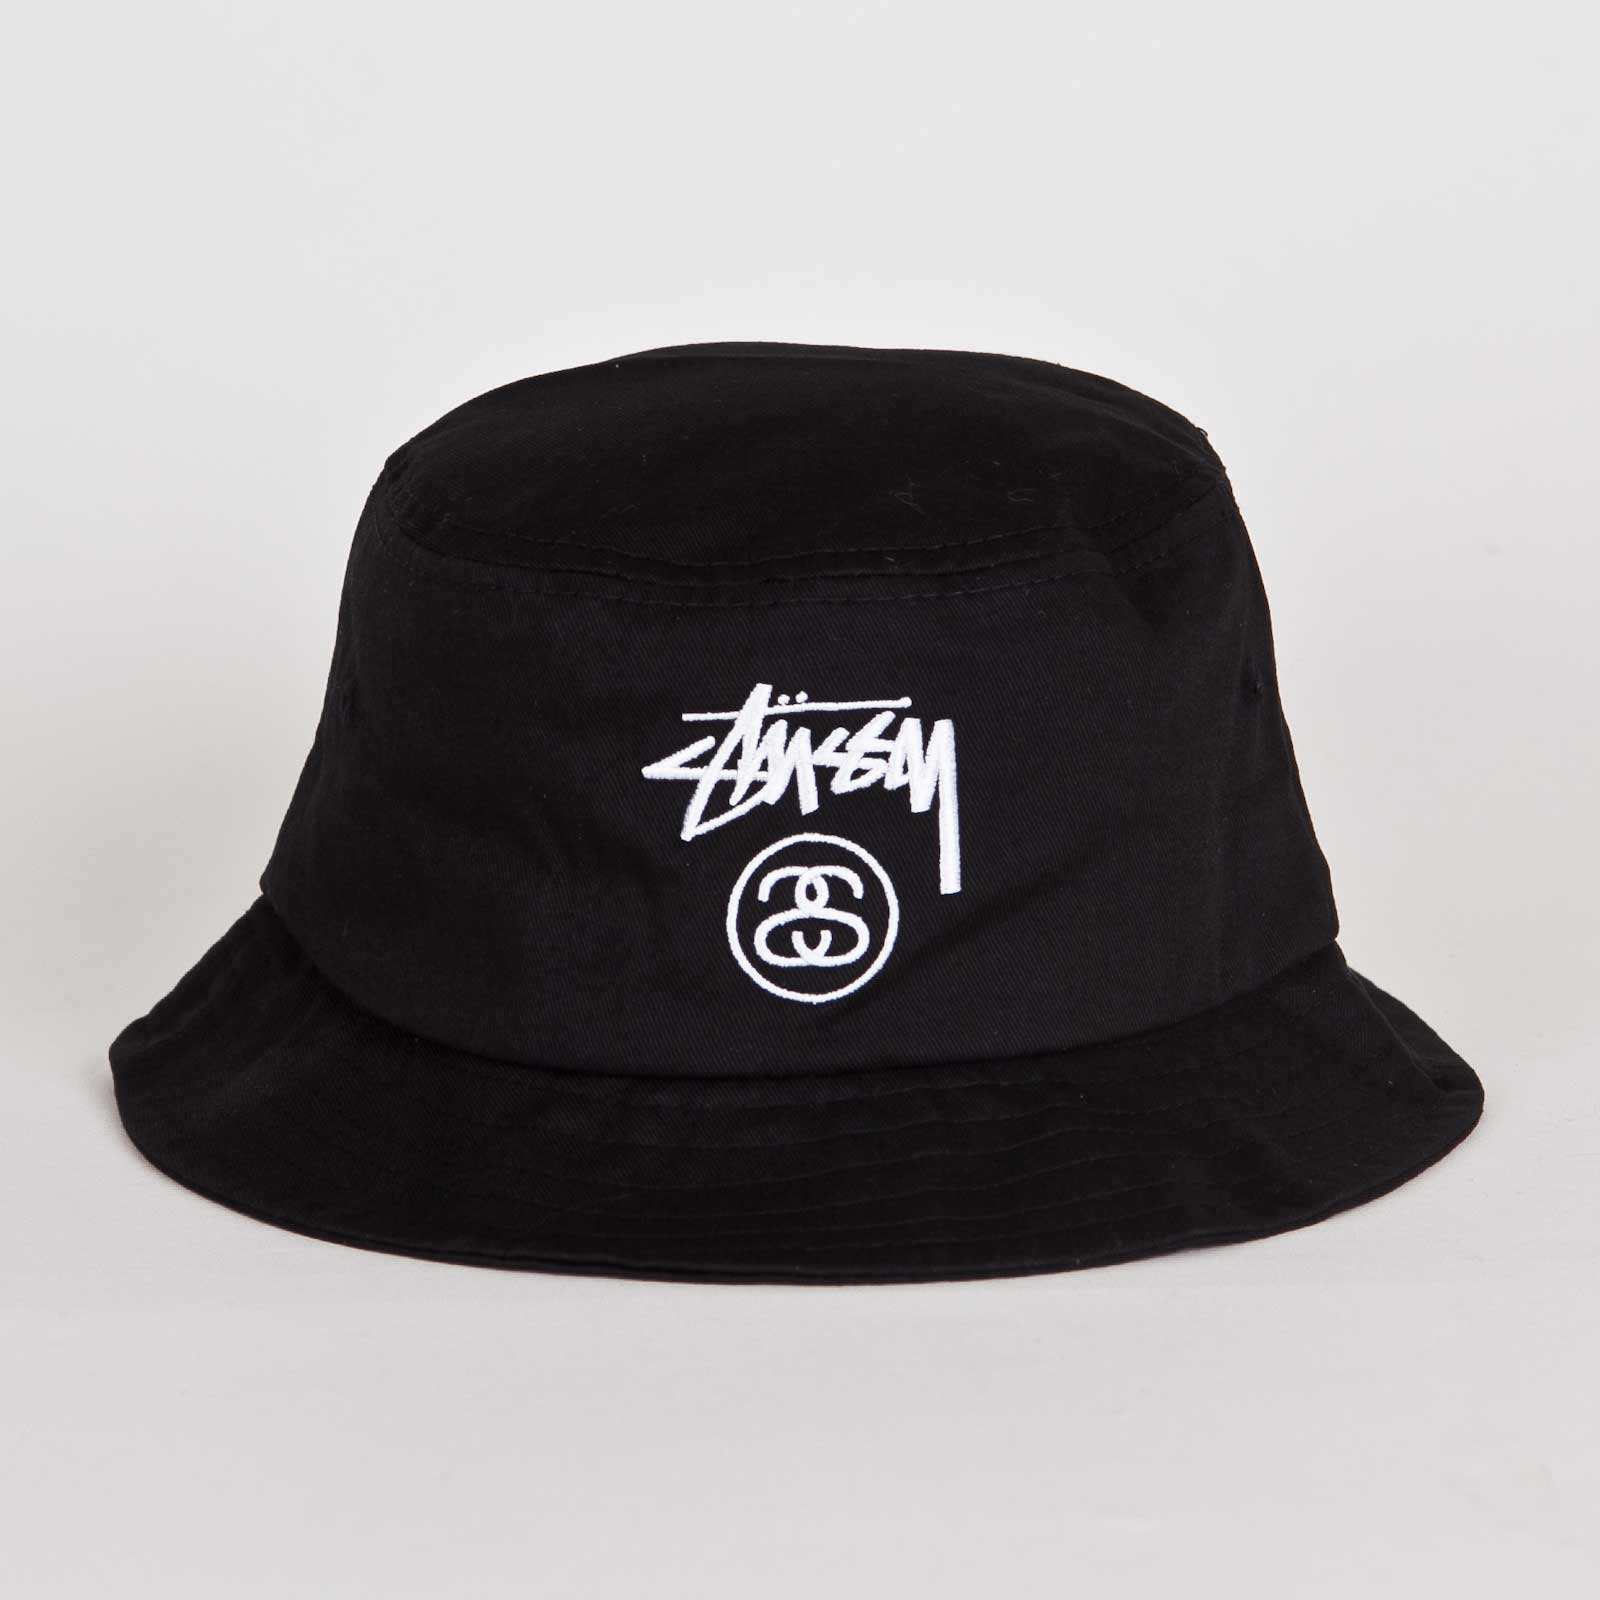 9d358a10856 Stussy Stock Lock FA14 Bucket Hat - 132589-0001 - Sneakersnstuff ...